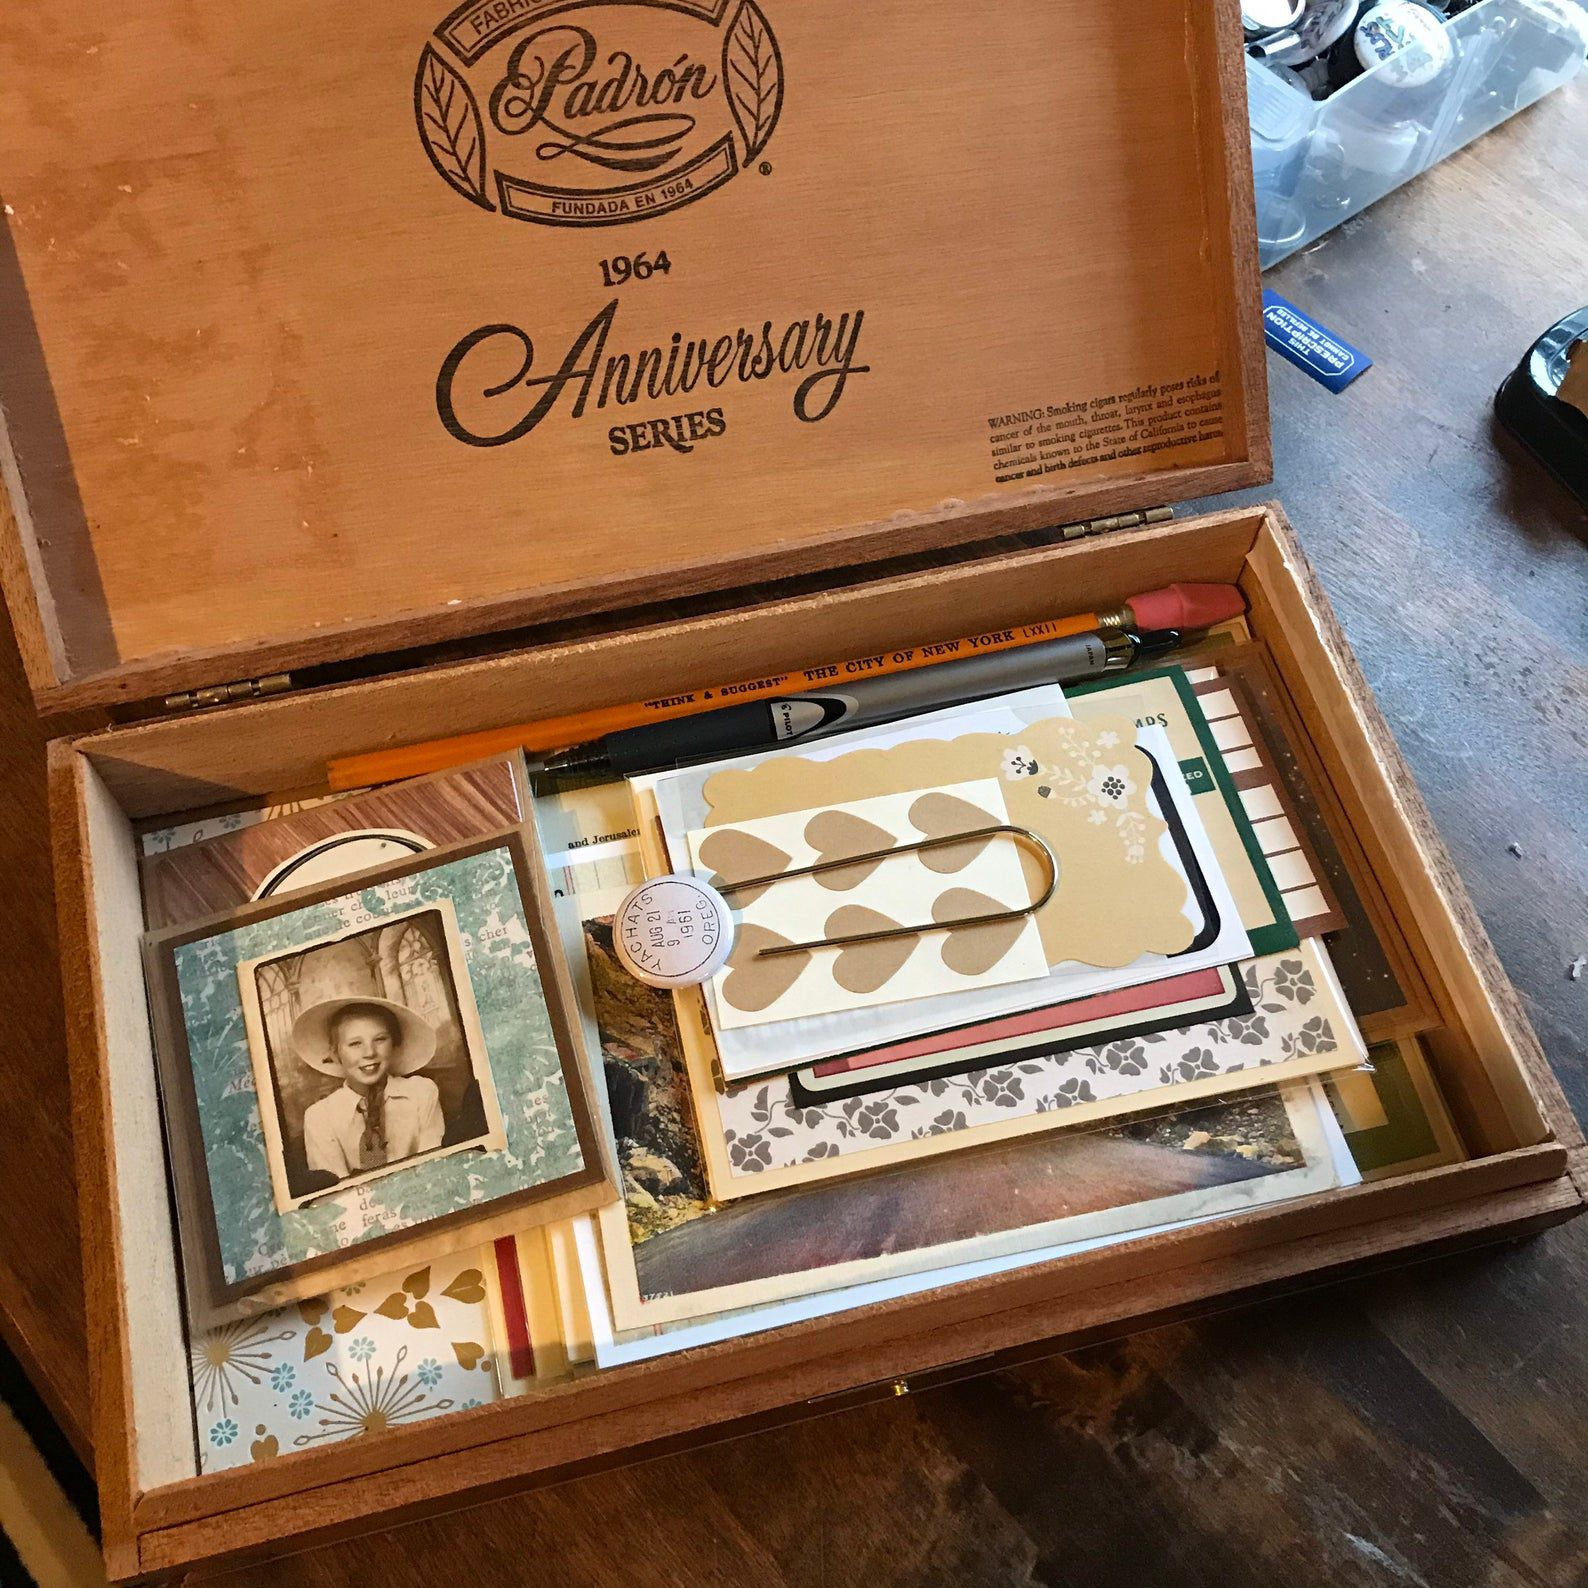 Image of cigar box with vintage style stationary inside, including pencils and pens.